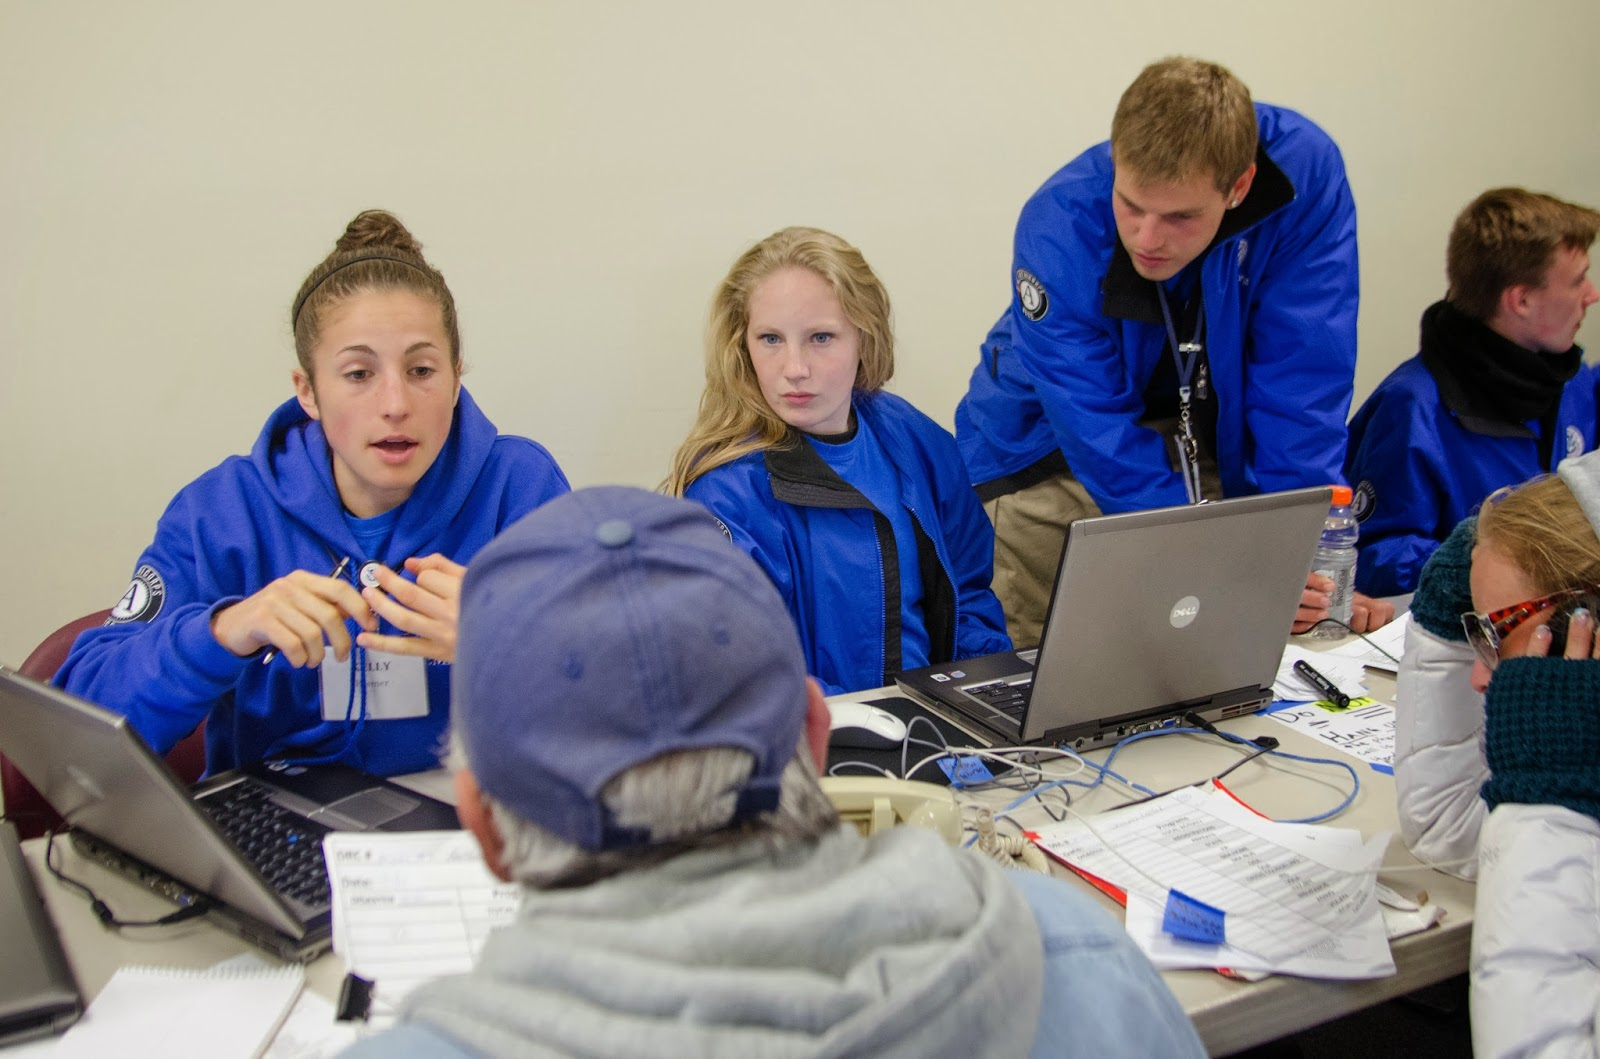 FEMA Corps members register survivors after Hurricane Sandy at a Disaster Recovery Center in New Jersey